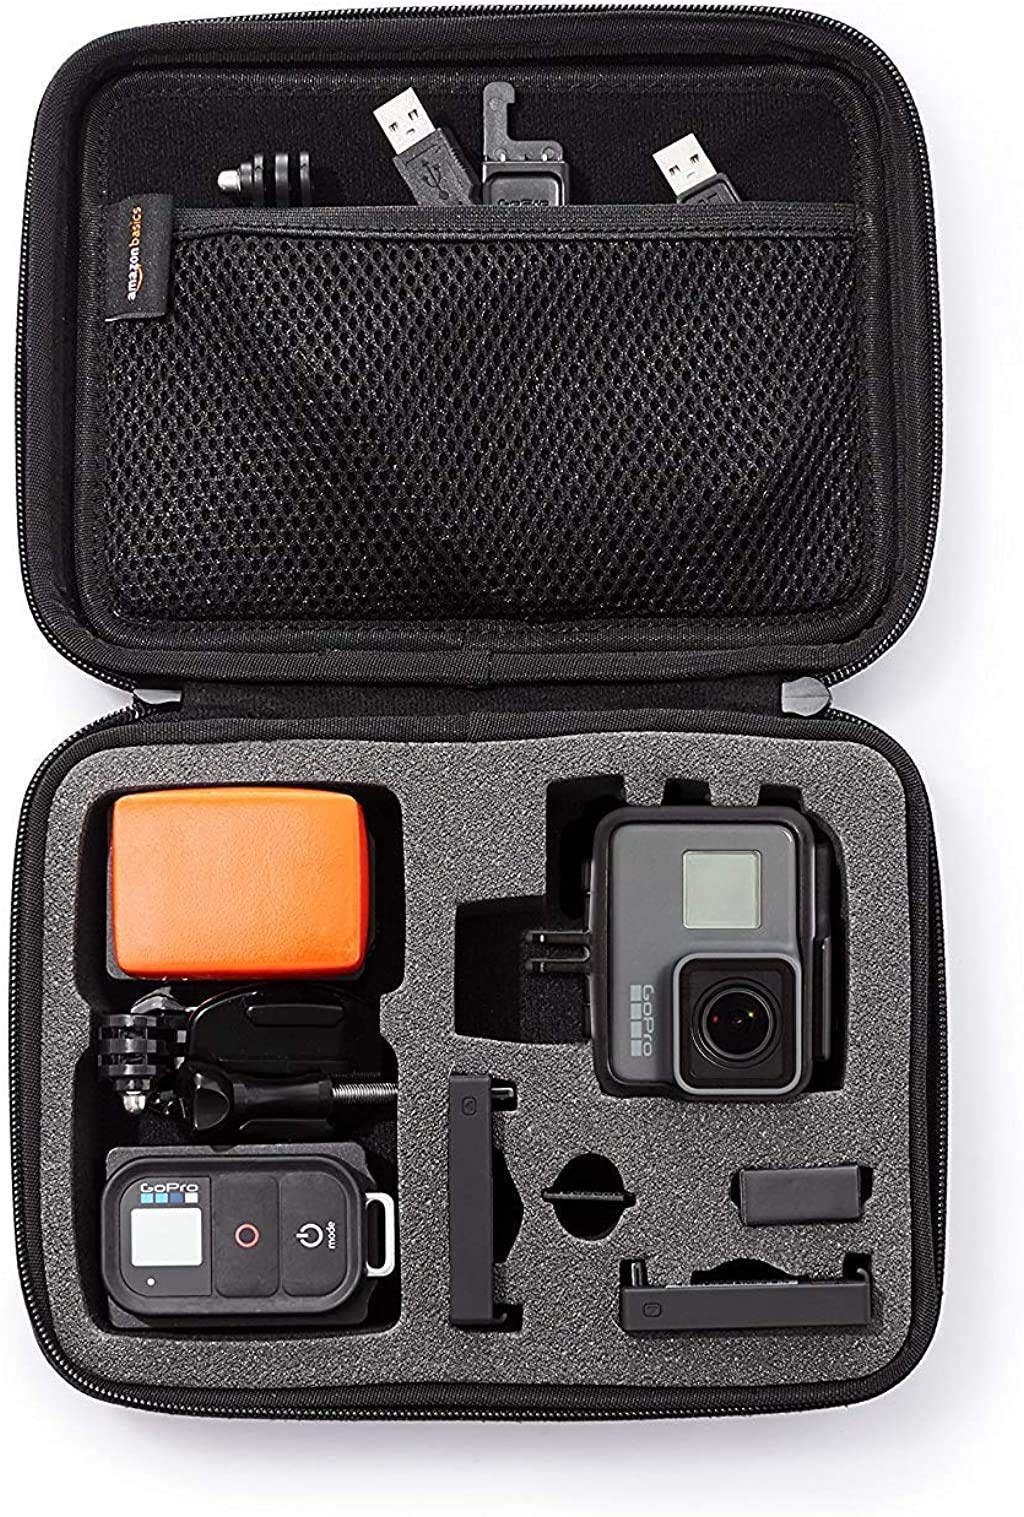 Amazon Basics Extra Small GoPro And Accessories Case - 6.5 x 5 x 2.5 Inches, Black